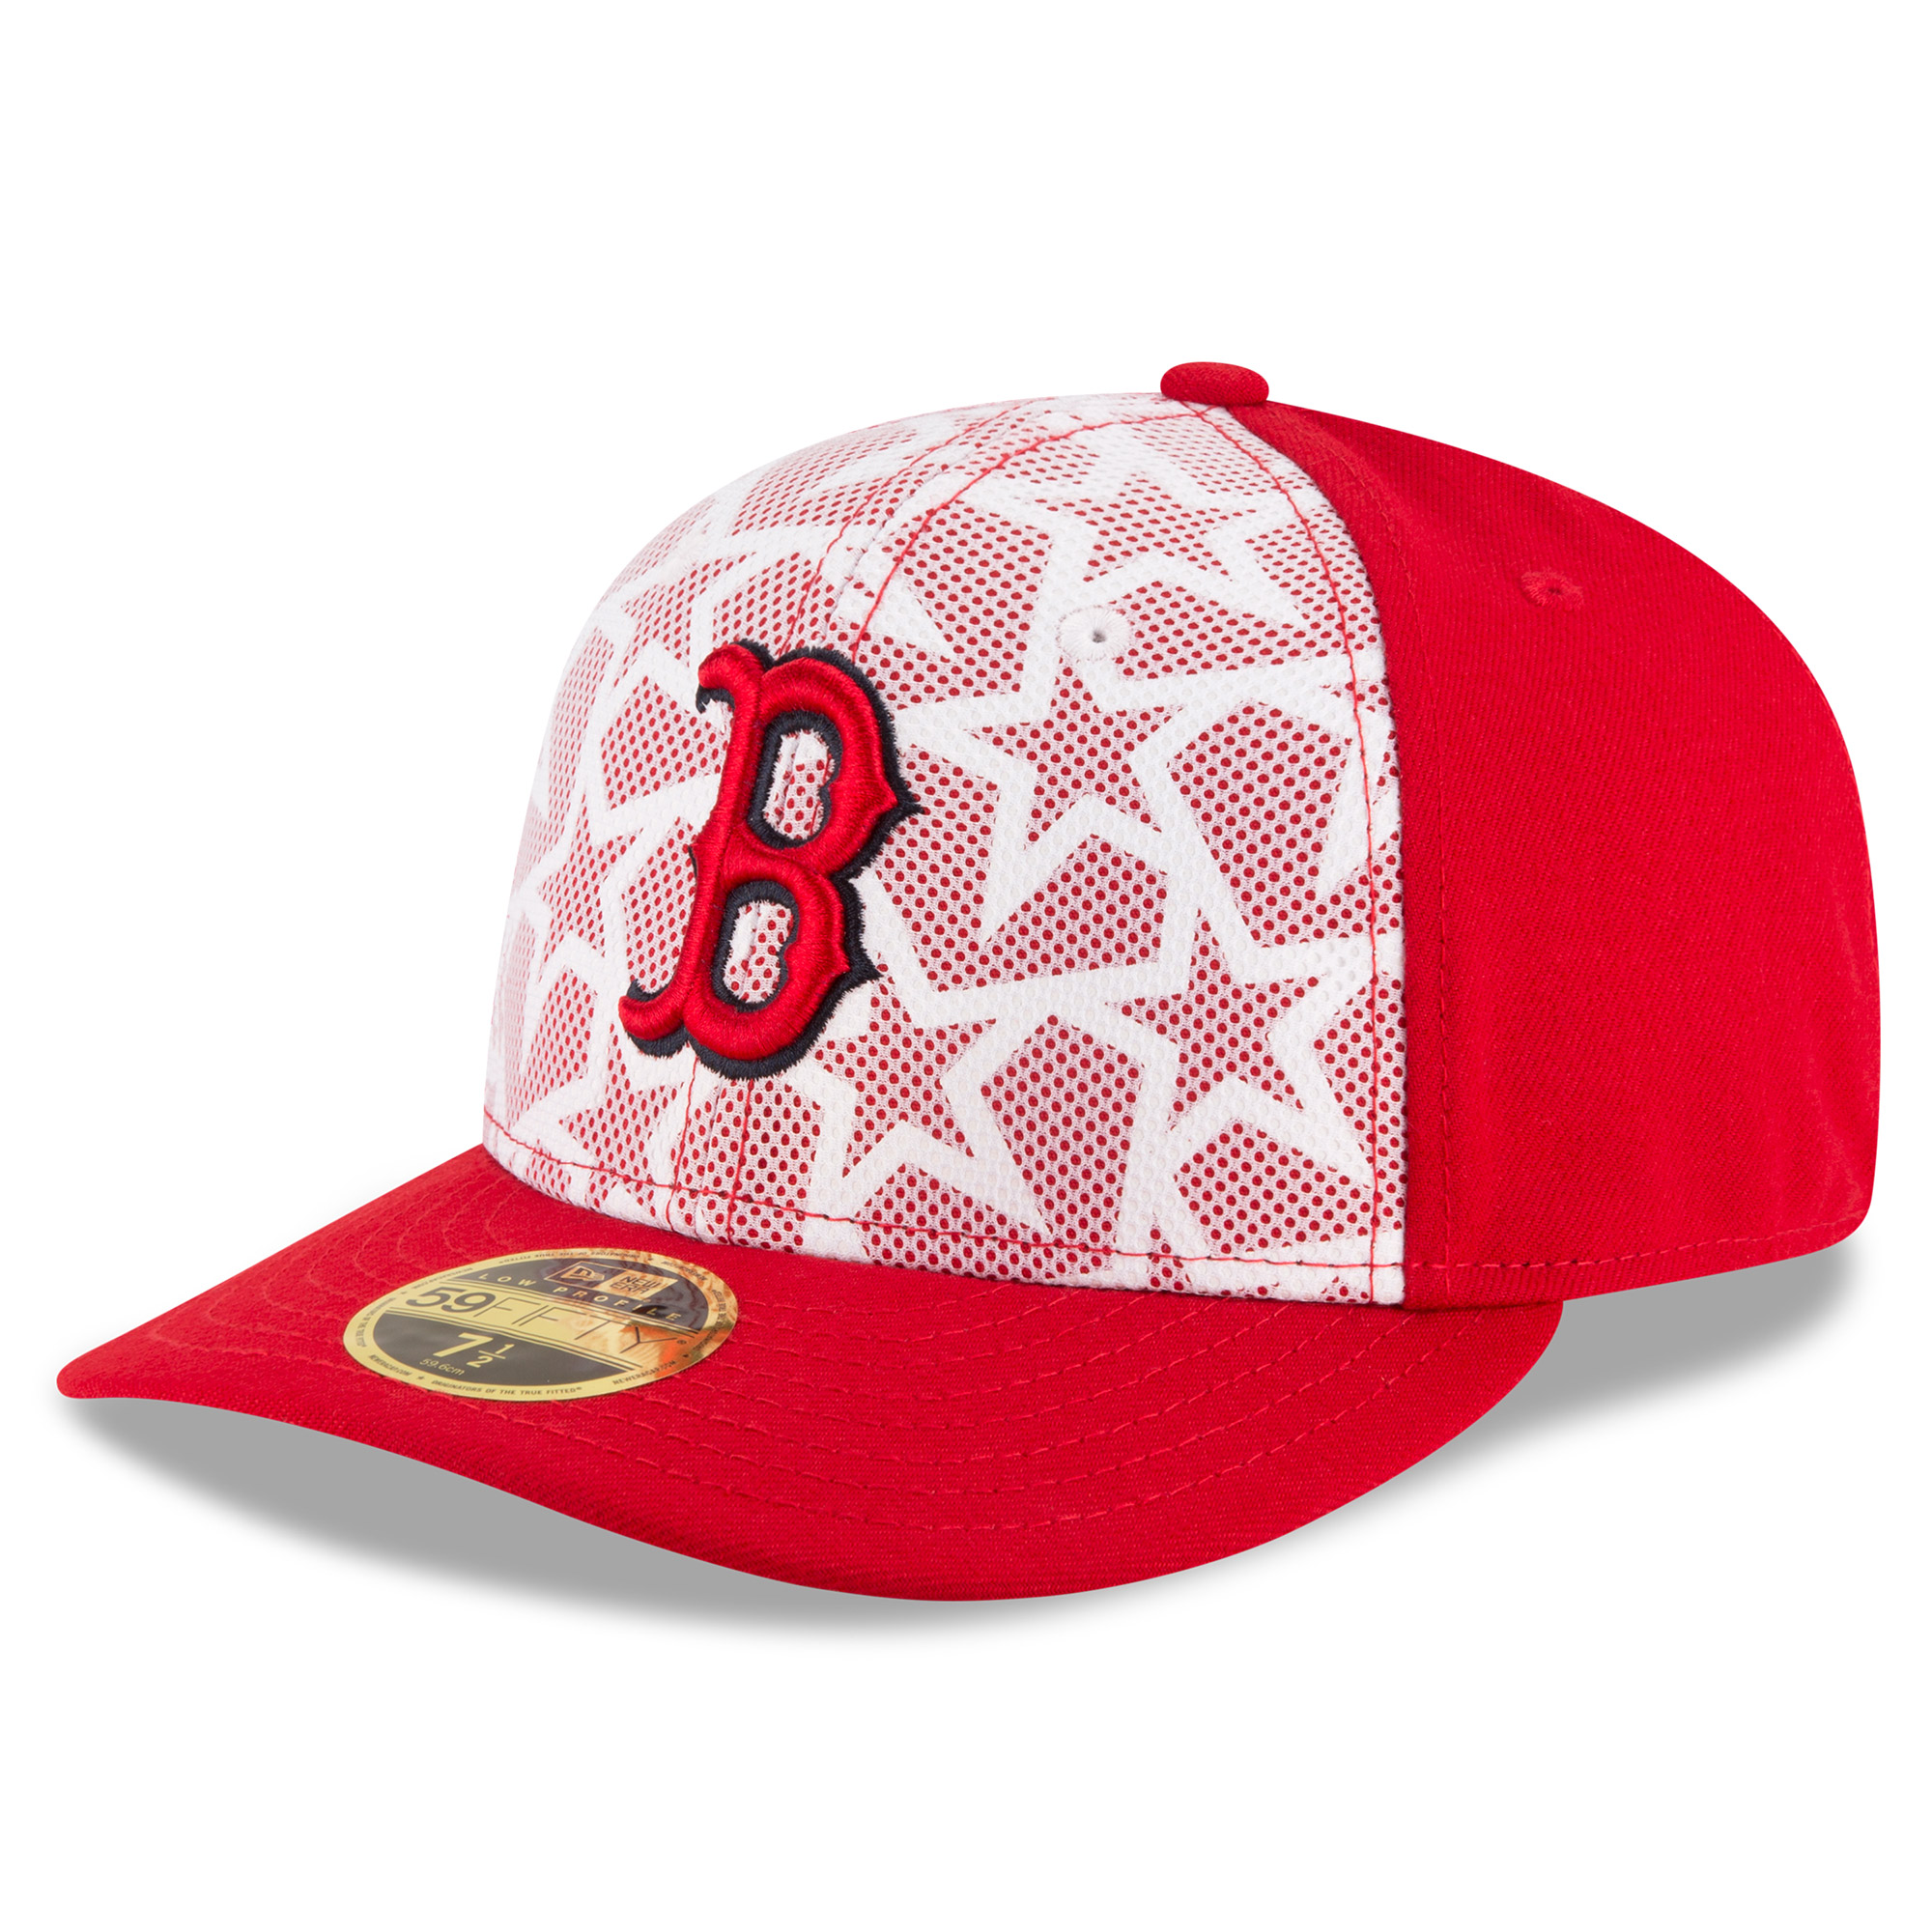 quality design 37016 029d6 ... canada boston red sox new era stars stripes low profile 59fifty fitted  hat white red walmart